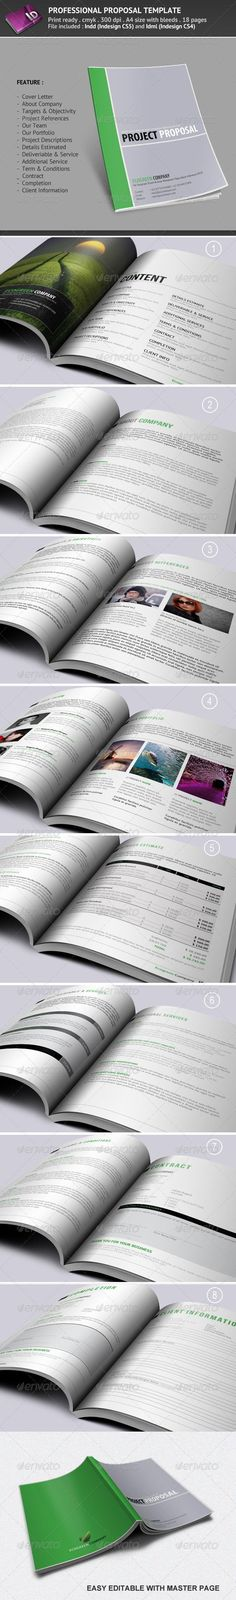 Professional Proposal Template Proposal templates, Project - professional proposal templates